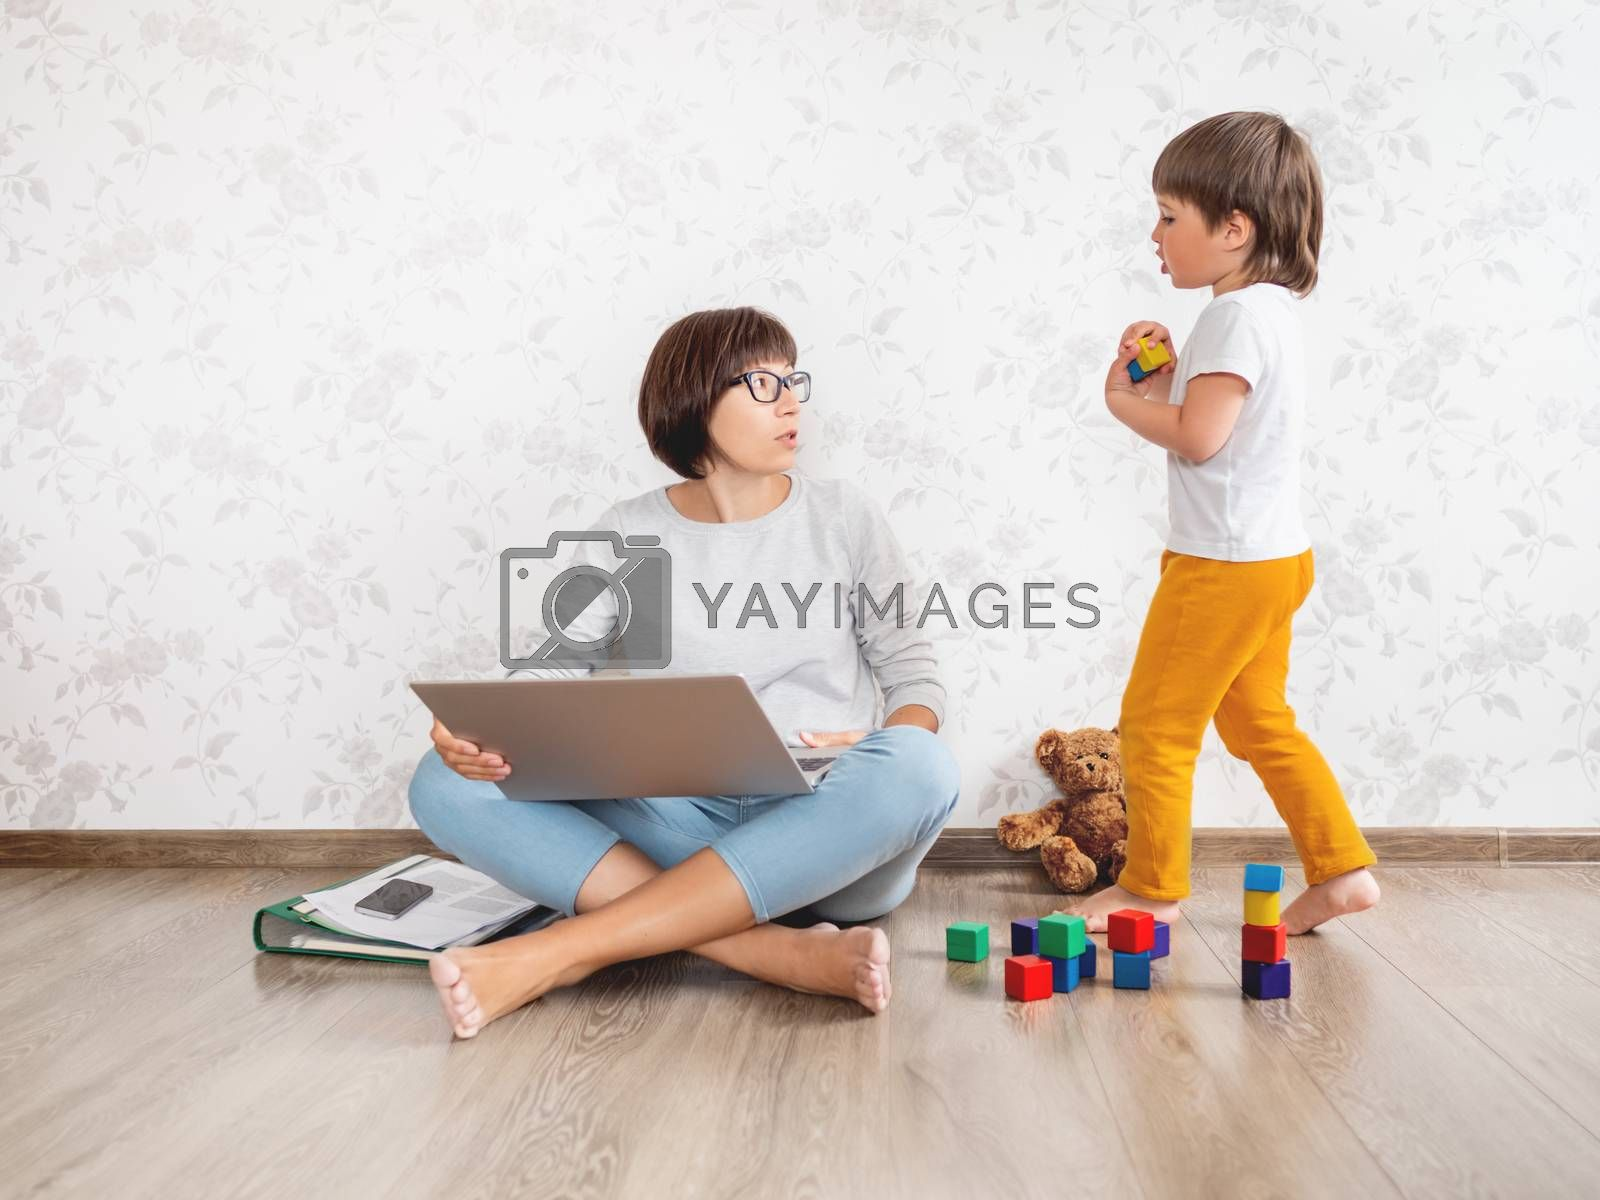 Mom and son at home. Mother works remotely with laptop, kid plays near her. Freelance work in same time with raising children.